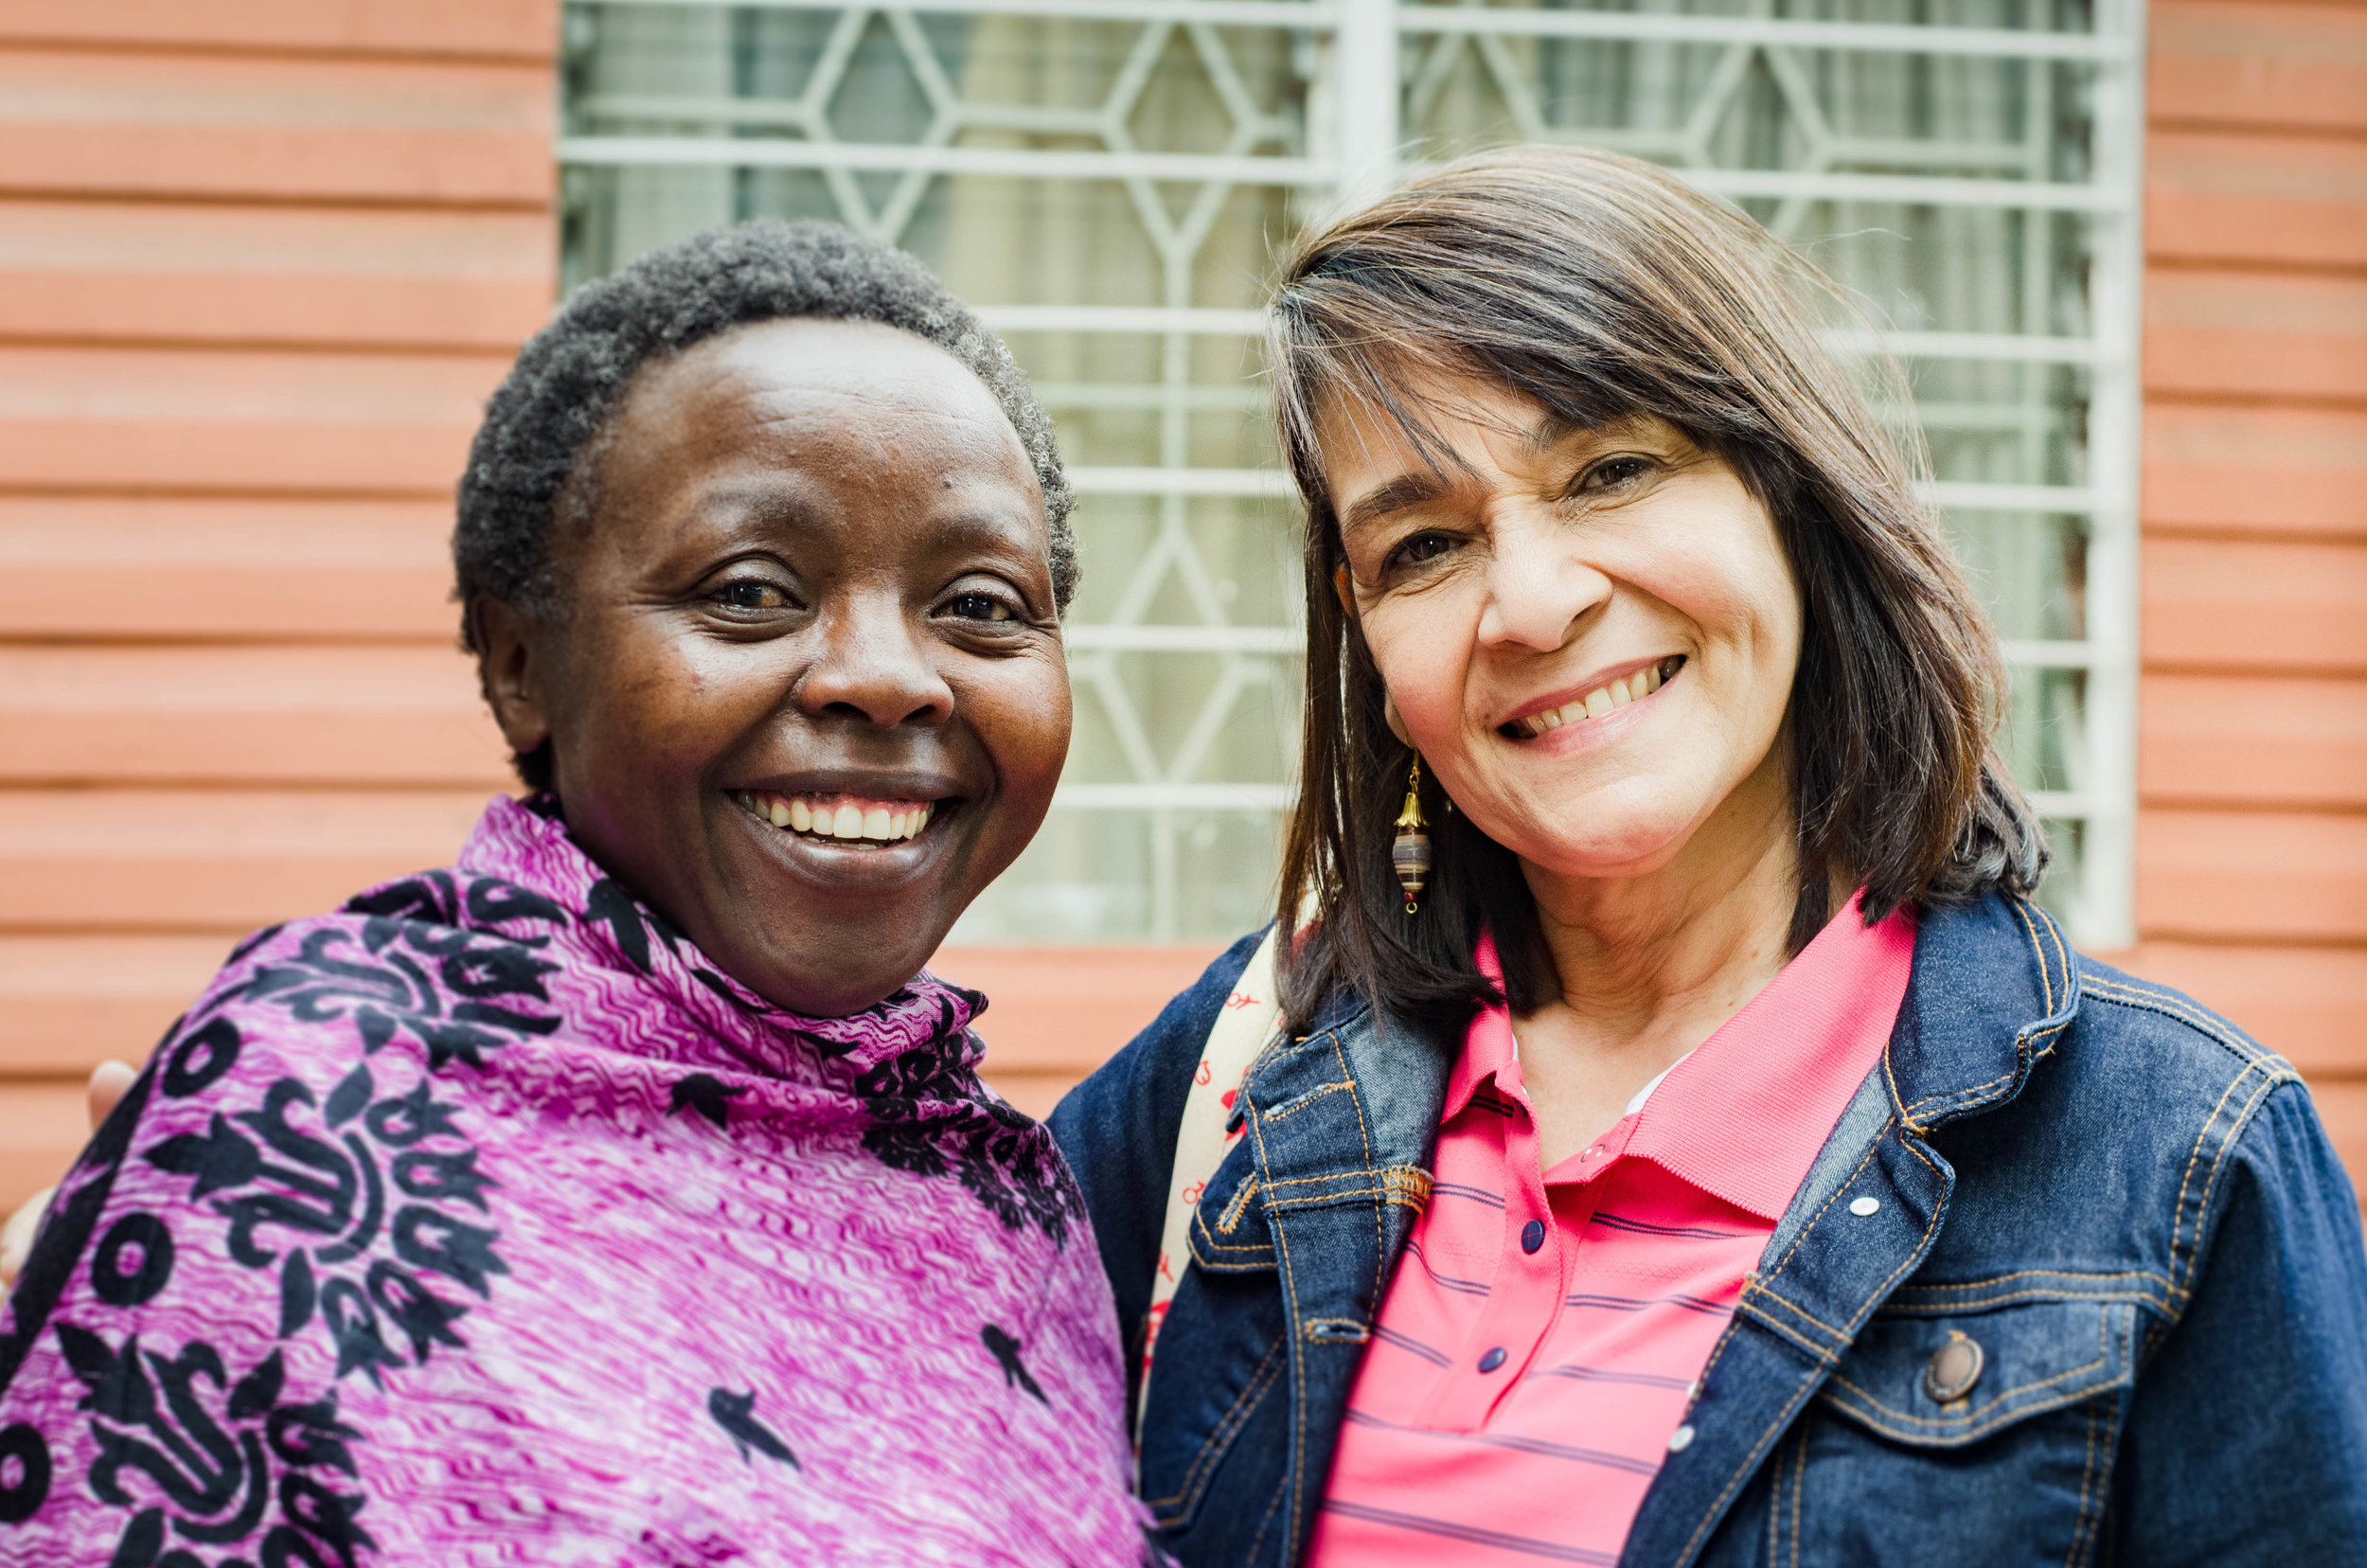 LATIN AMERICA - Abilene works to recruit and train Christians of different denominations to bring the Word of God to people who live in places with difficult access, who don't know Christ or where there is little evangelical presence.  The training focuses on the importance of health in three dimensions: body, soul and spirit.